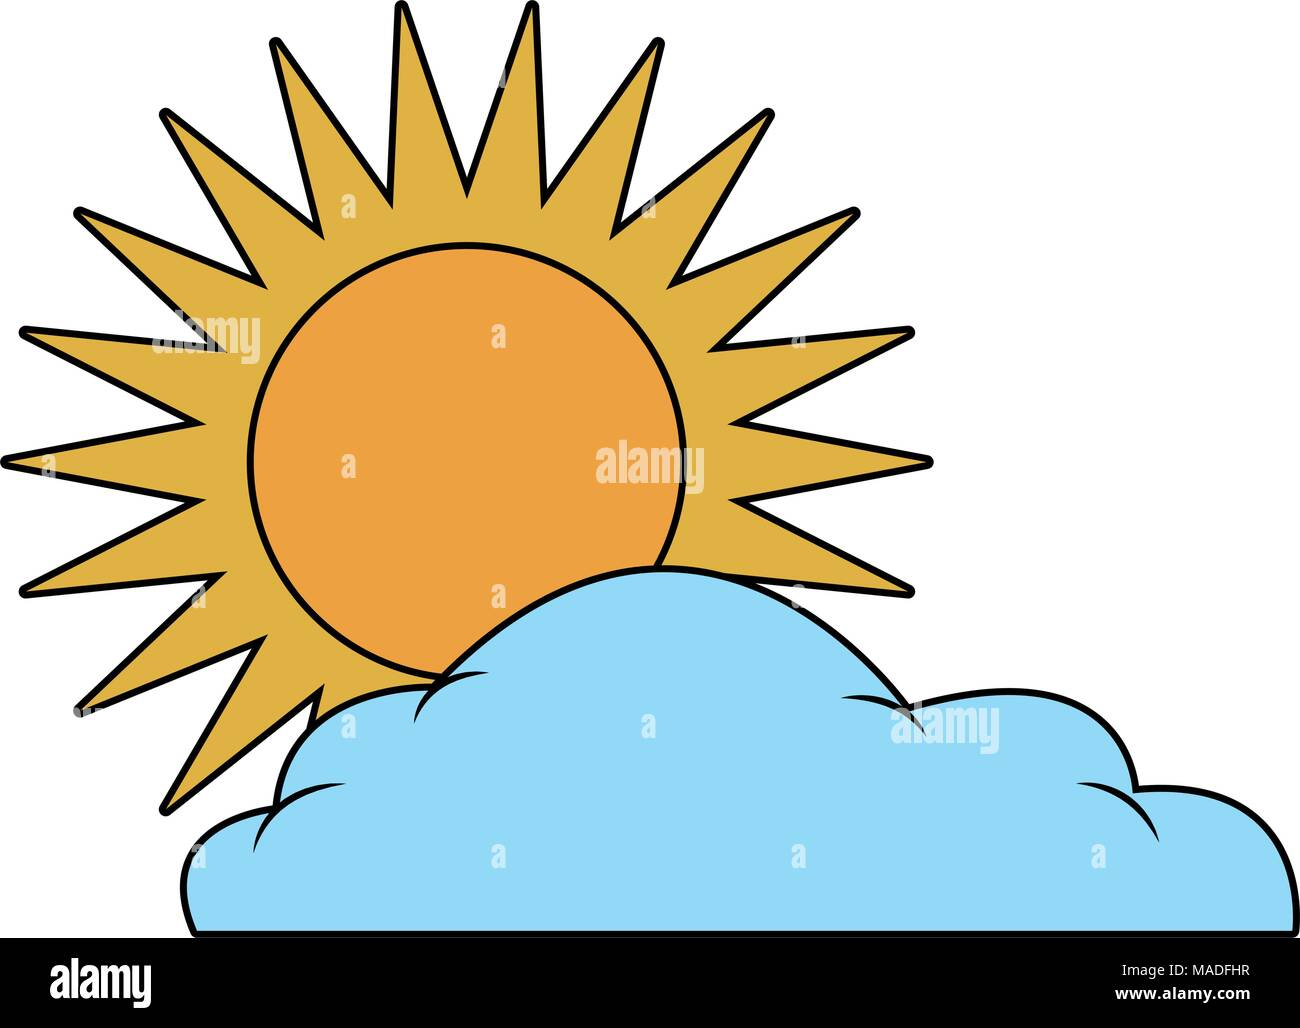 Sun and cloud weather symbol - Stock Vector